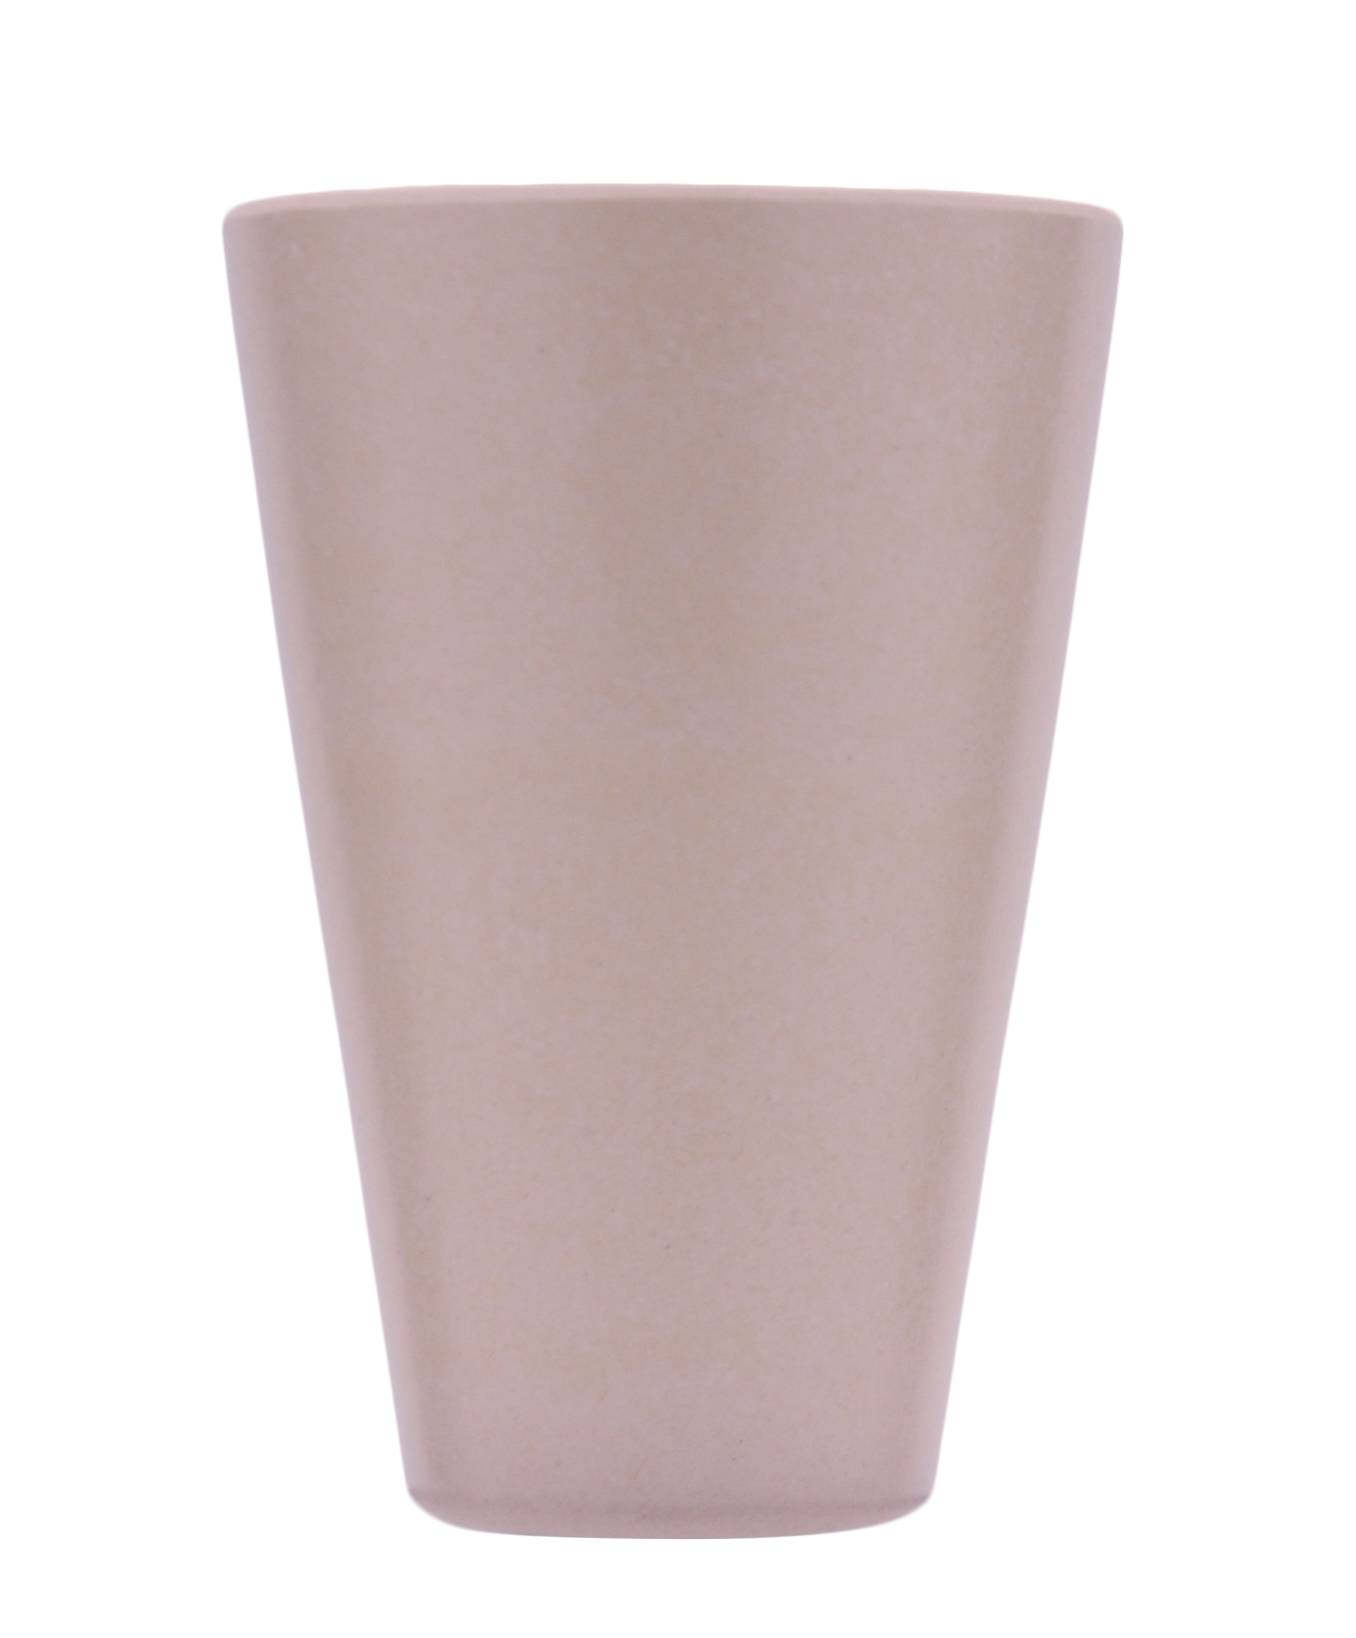 16oz/450ml custom printed eco-friendly 100% biodegradable material Bamboo Fiber cup for milk coffee